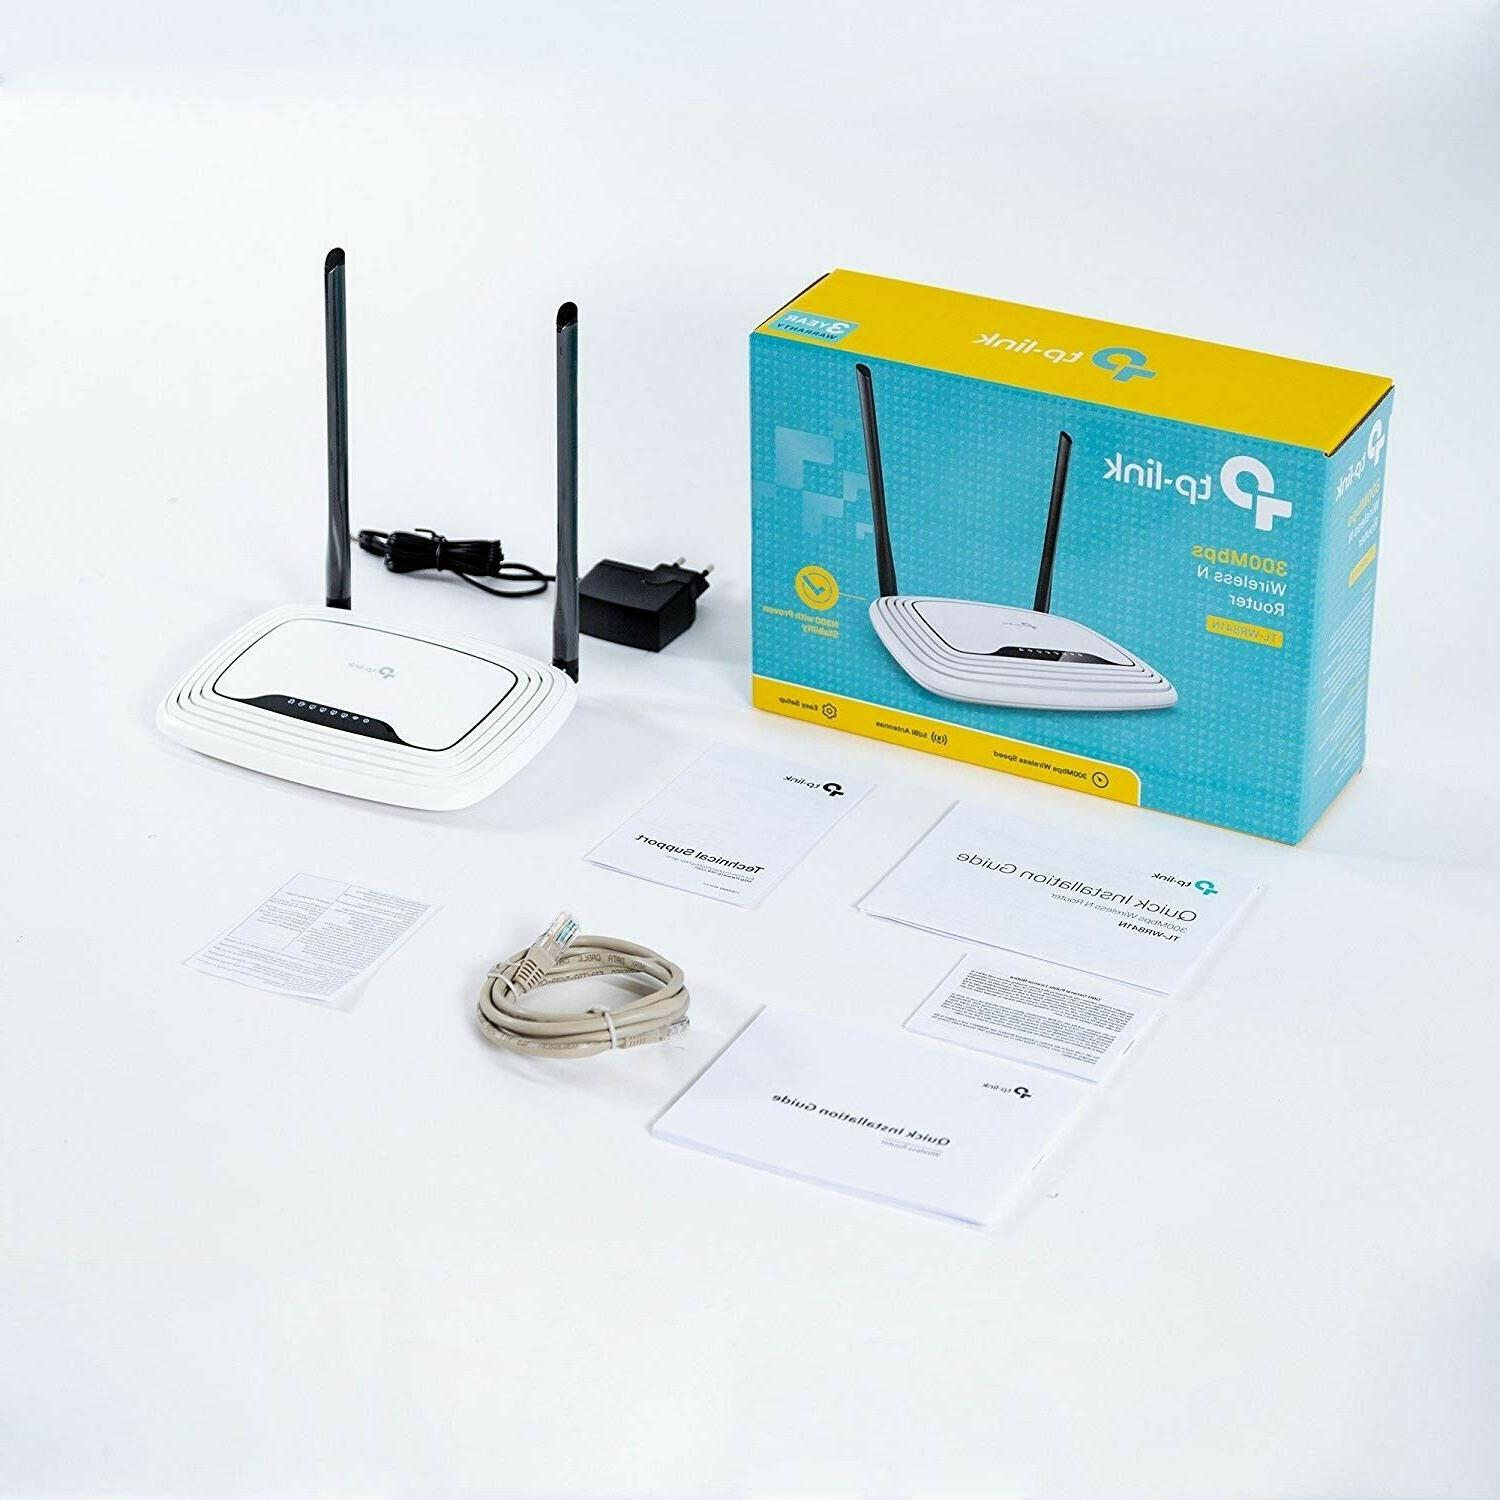 TP-Link Wireless Router 5dBi High Antennas, Up to